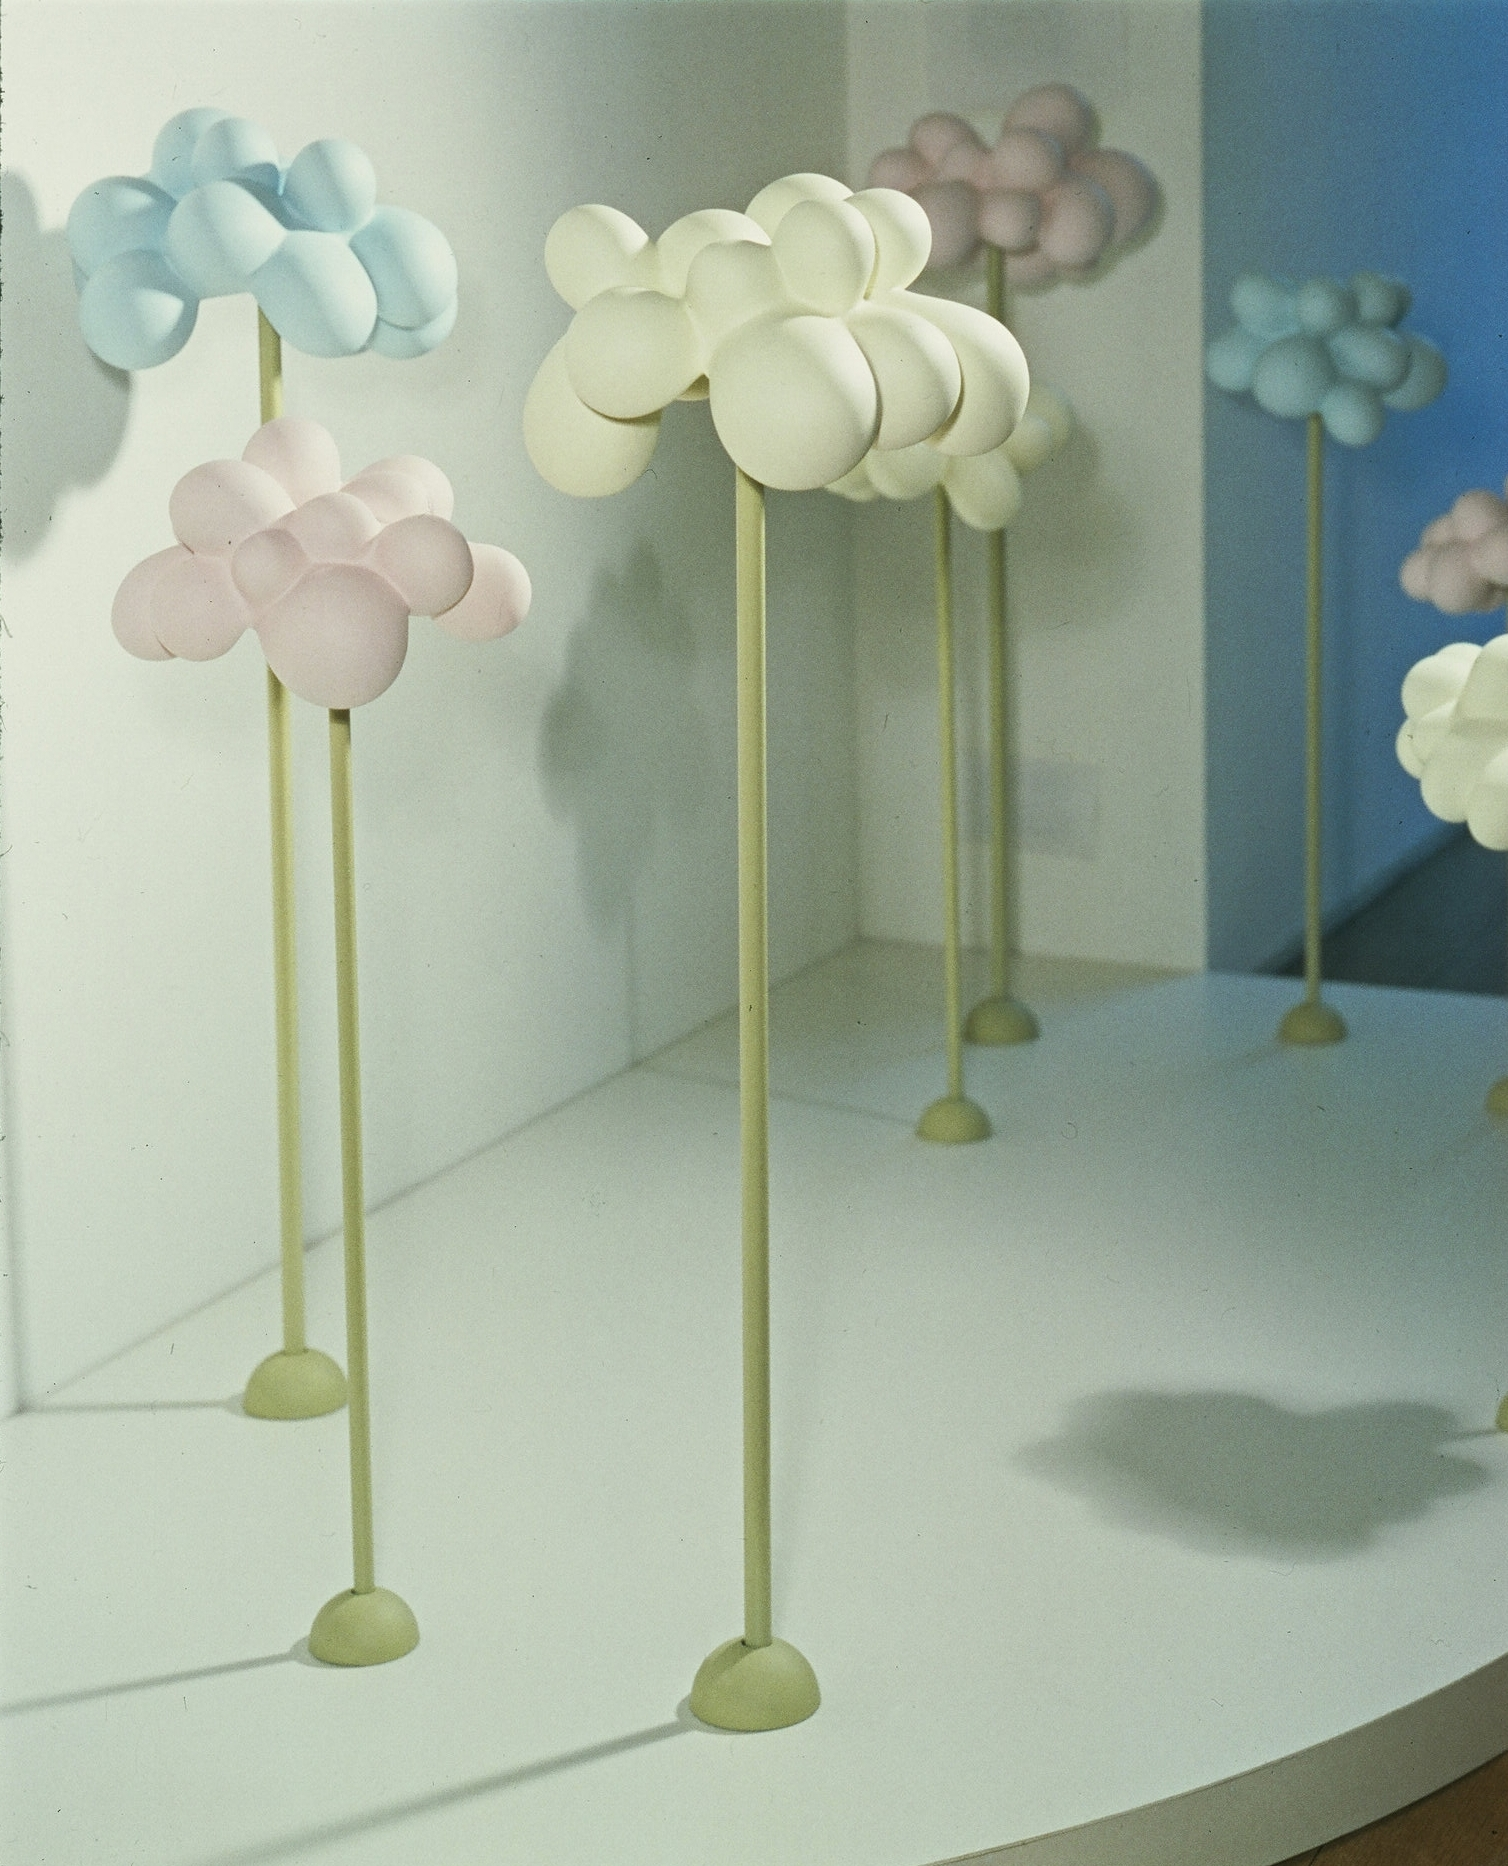 ALMOND CANDY FLOWERS INSTALLATION SHOT